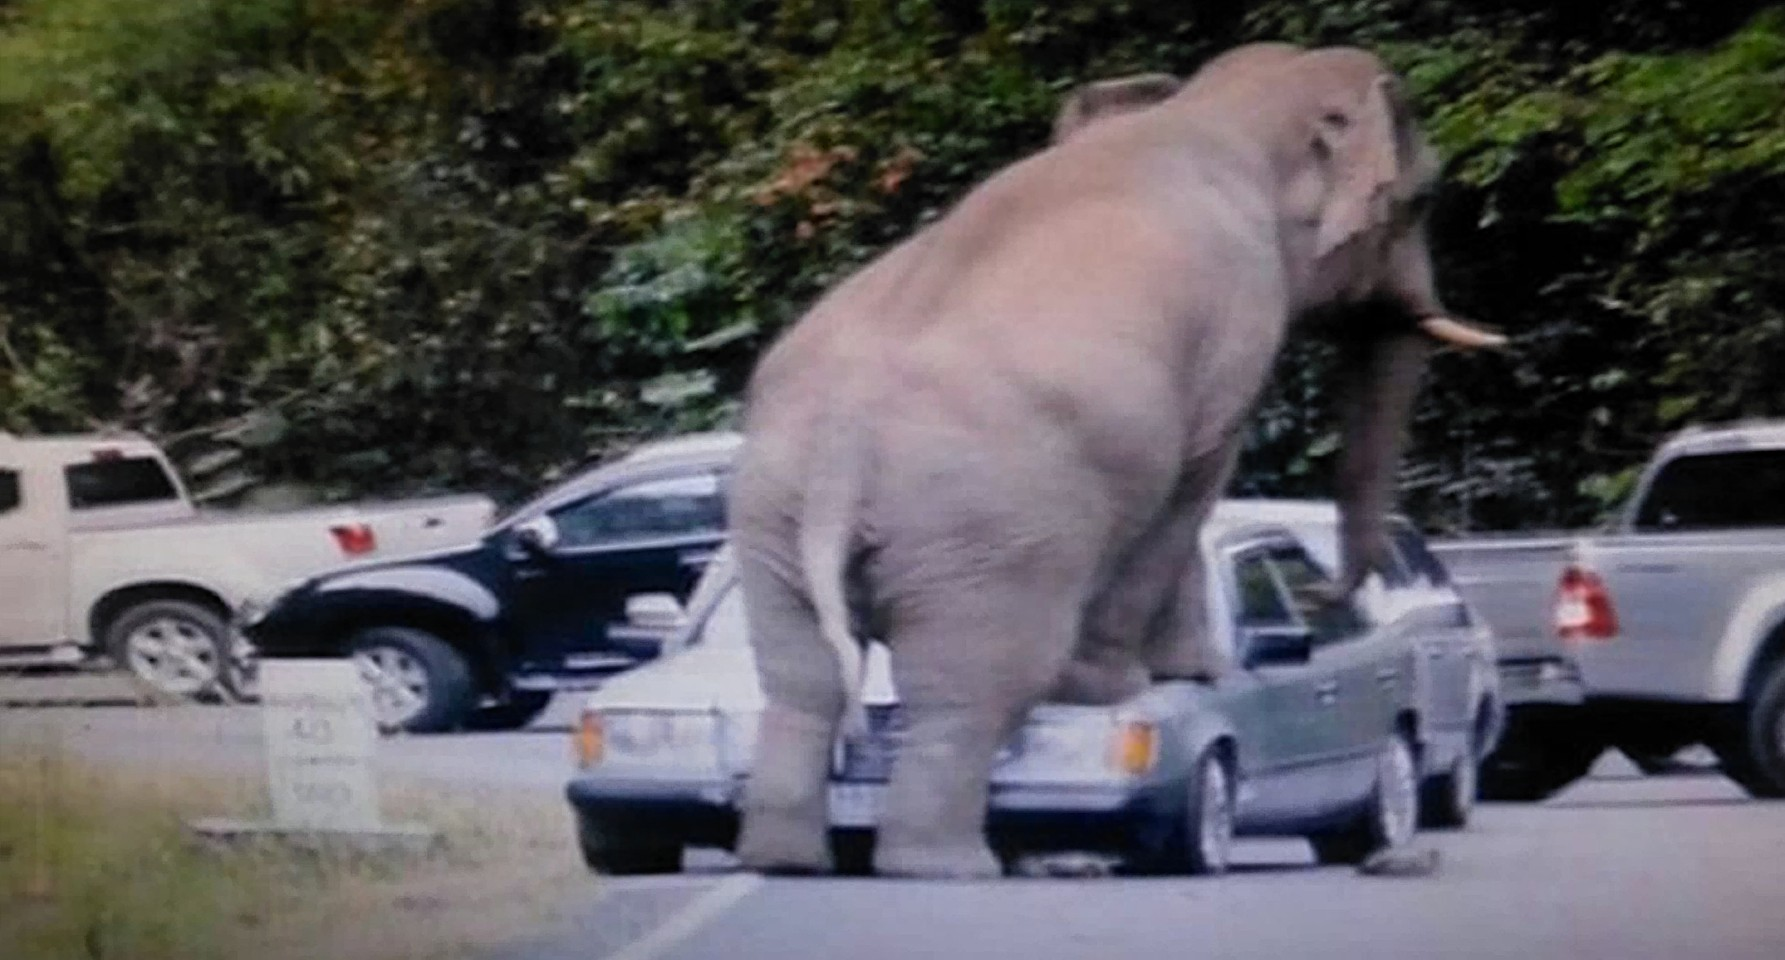 Video Terrifying Footage Of Elephant Crushing Car In Thai